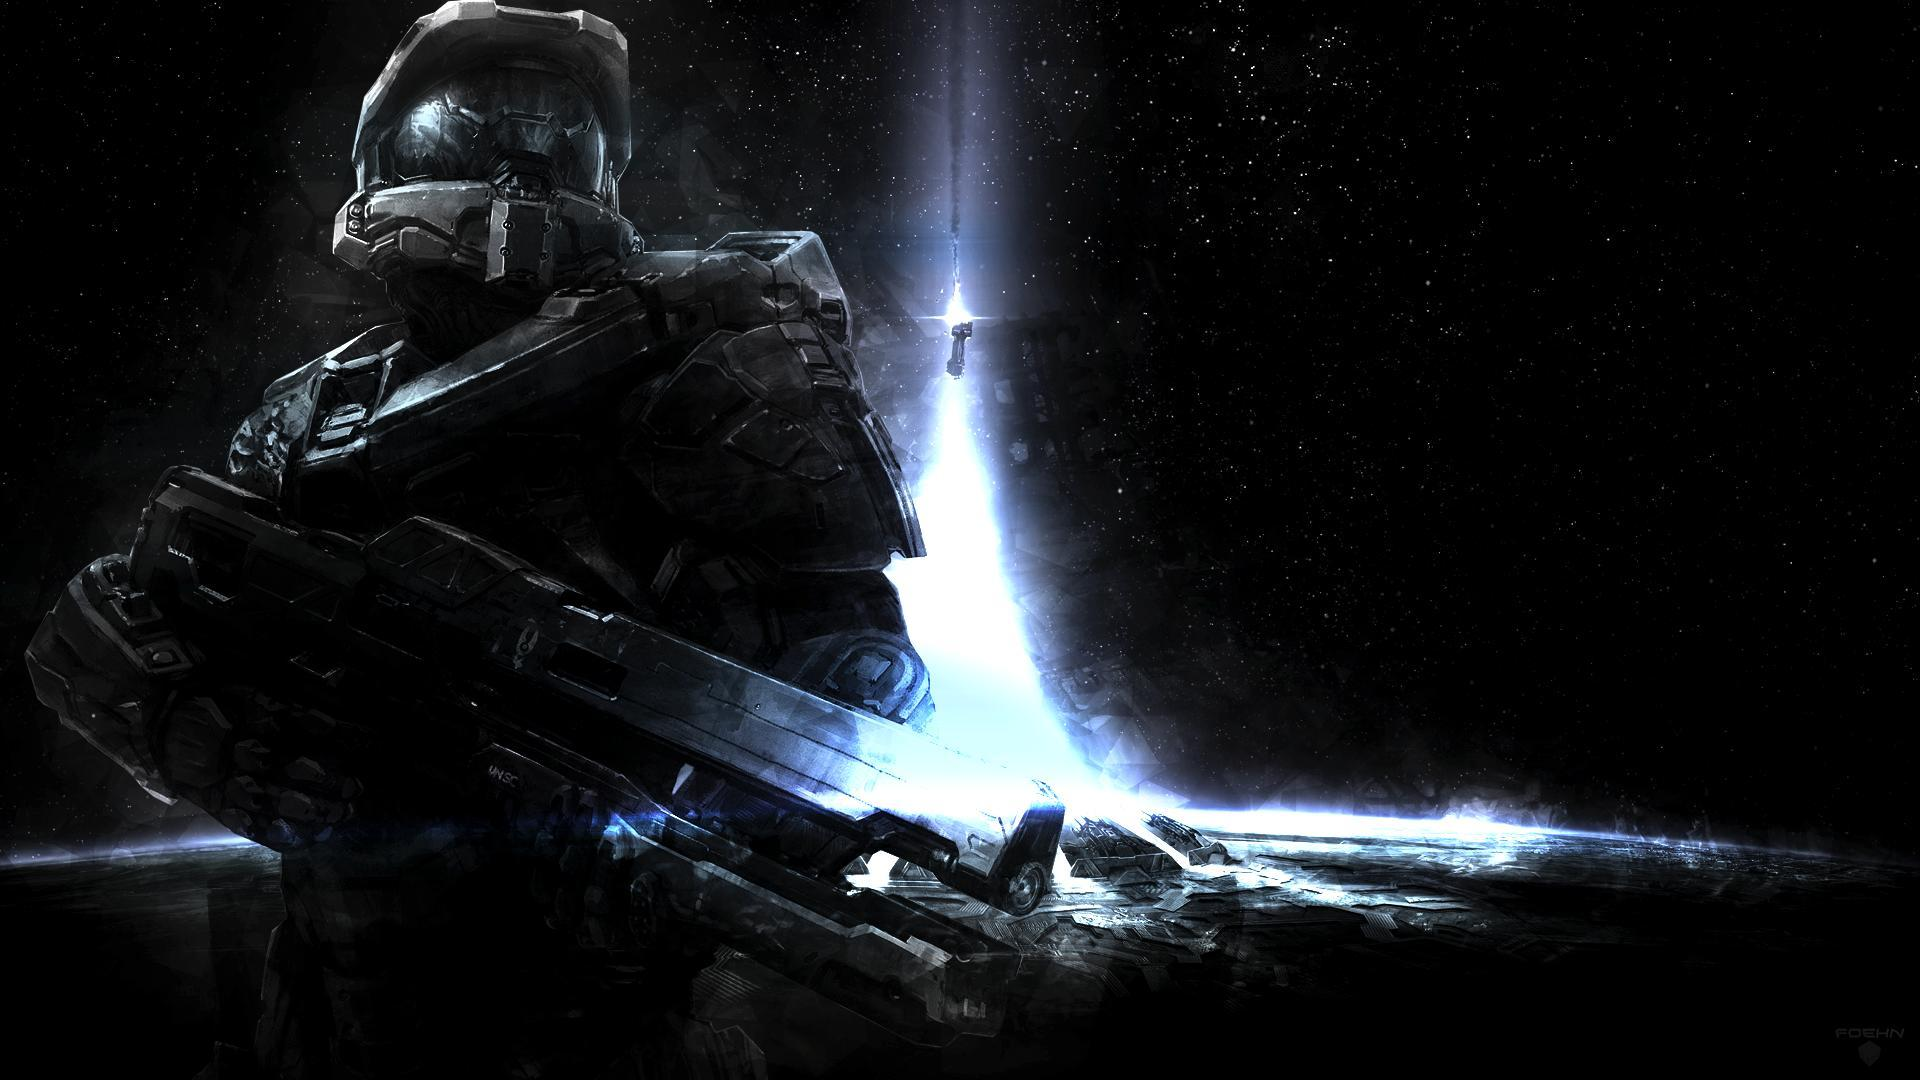 Halo 4 Wallpapers Wide Image